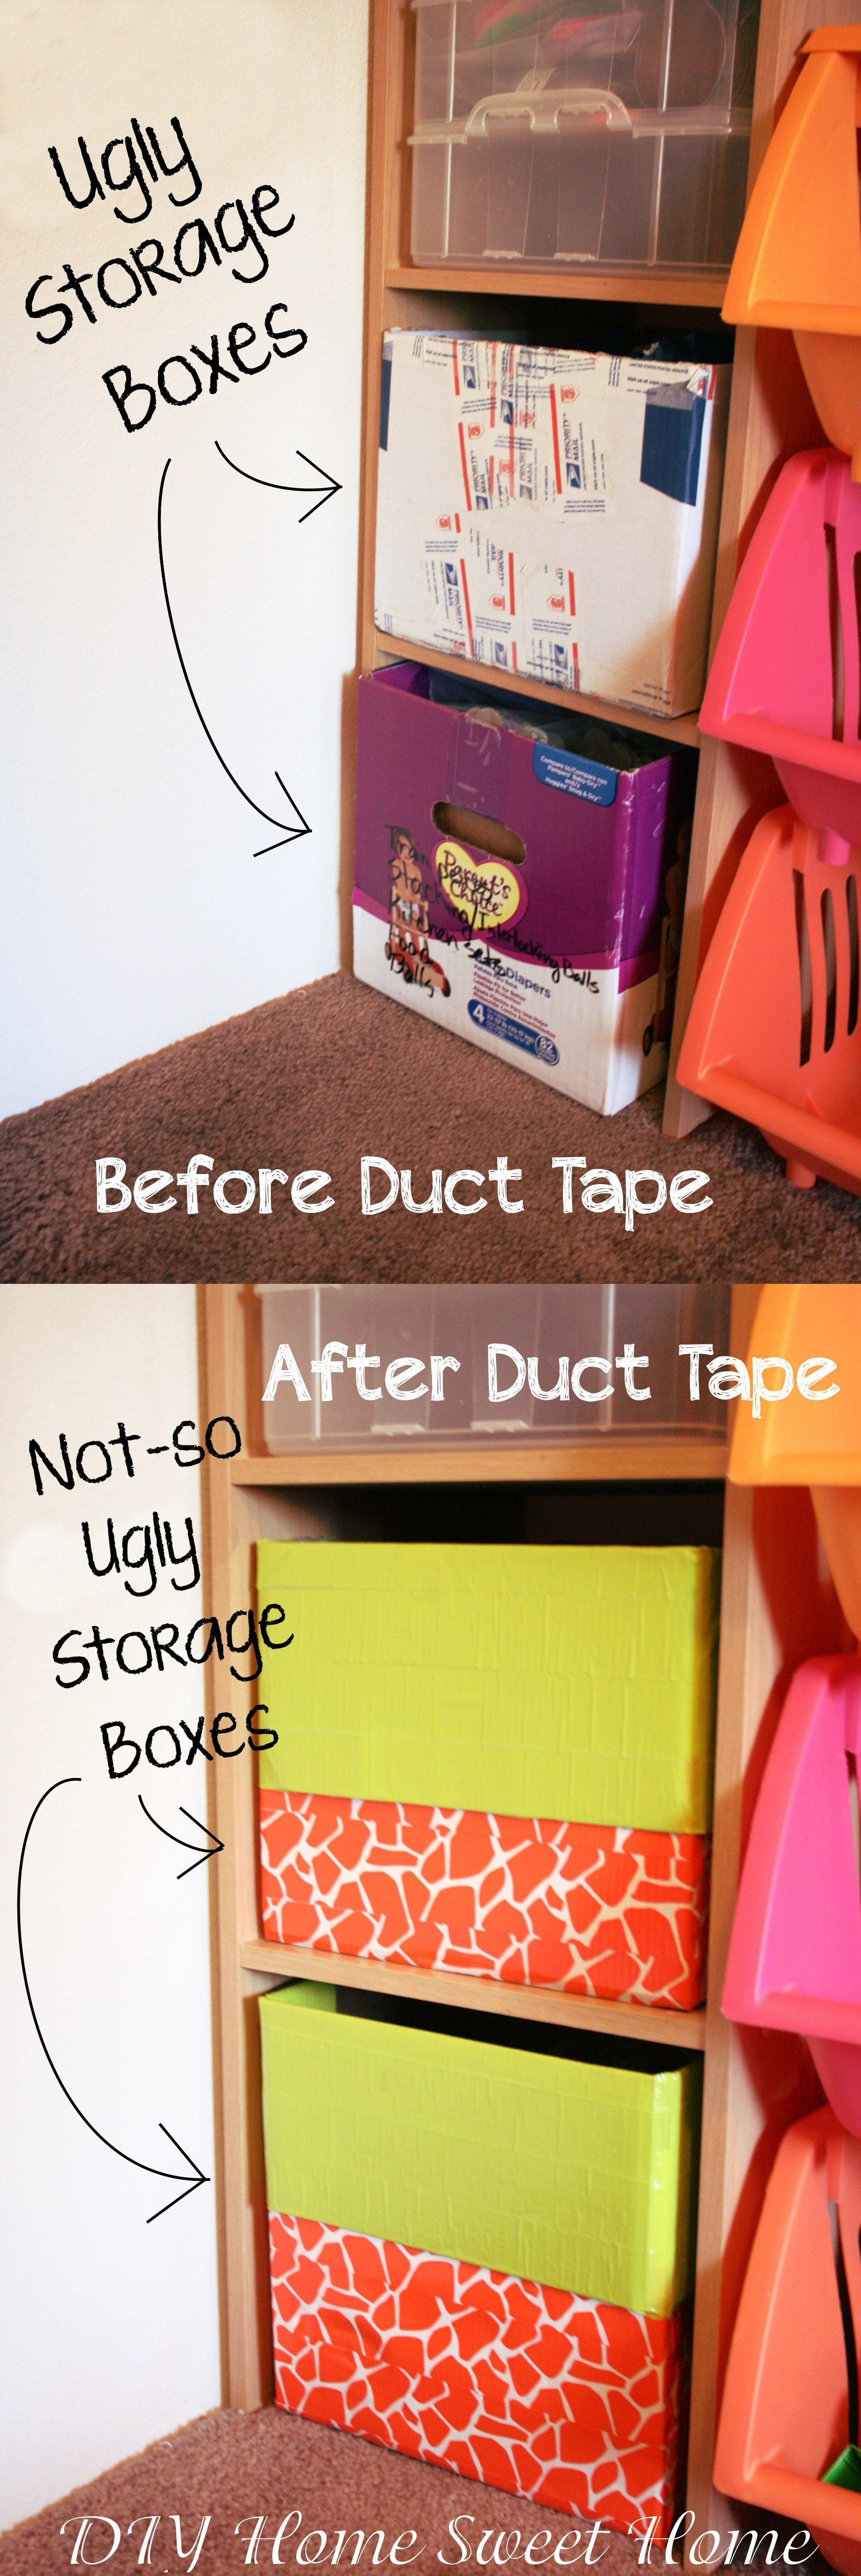 cover letter sample attorney%0A Or pick up a few rolls of fun  colorful duct tape and use that to cover  repurposed storage boxes